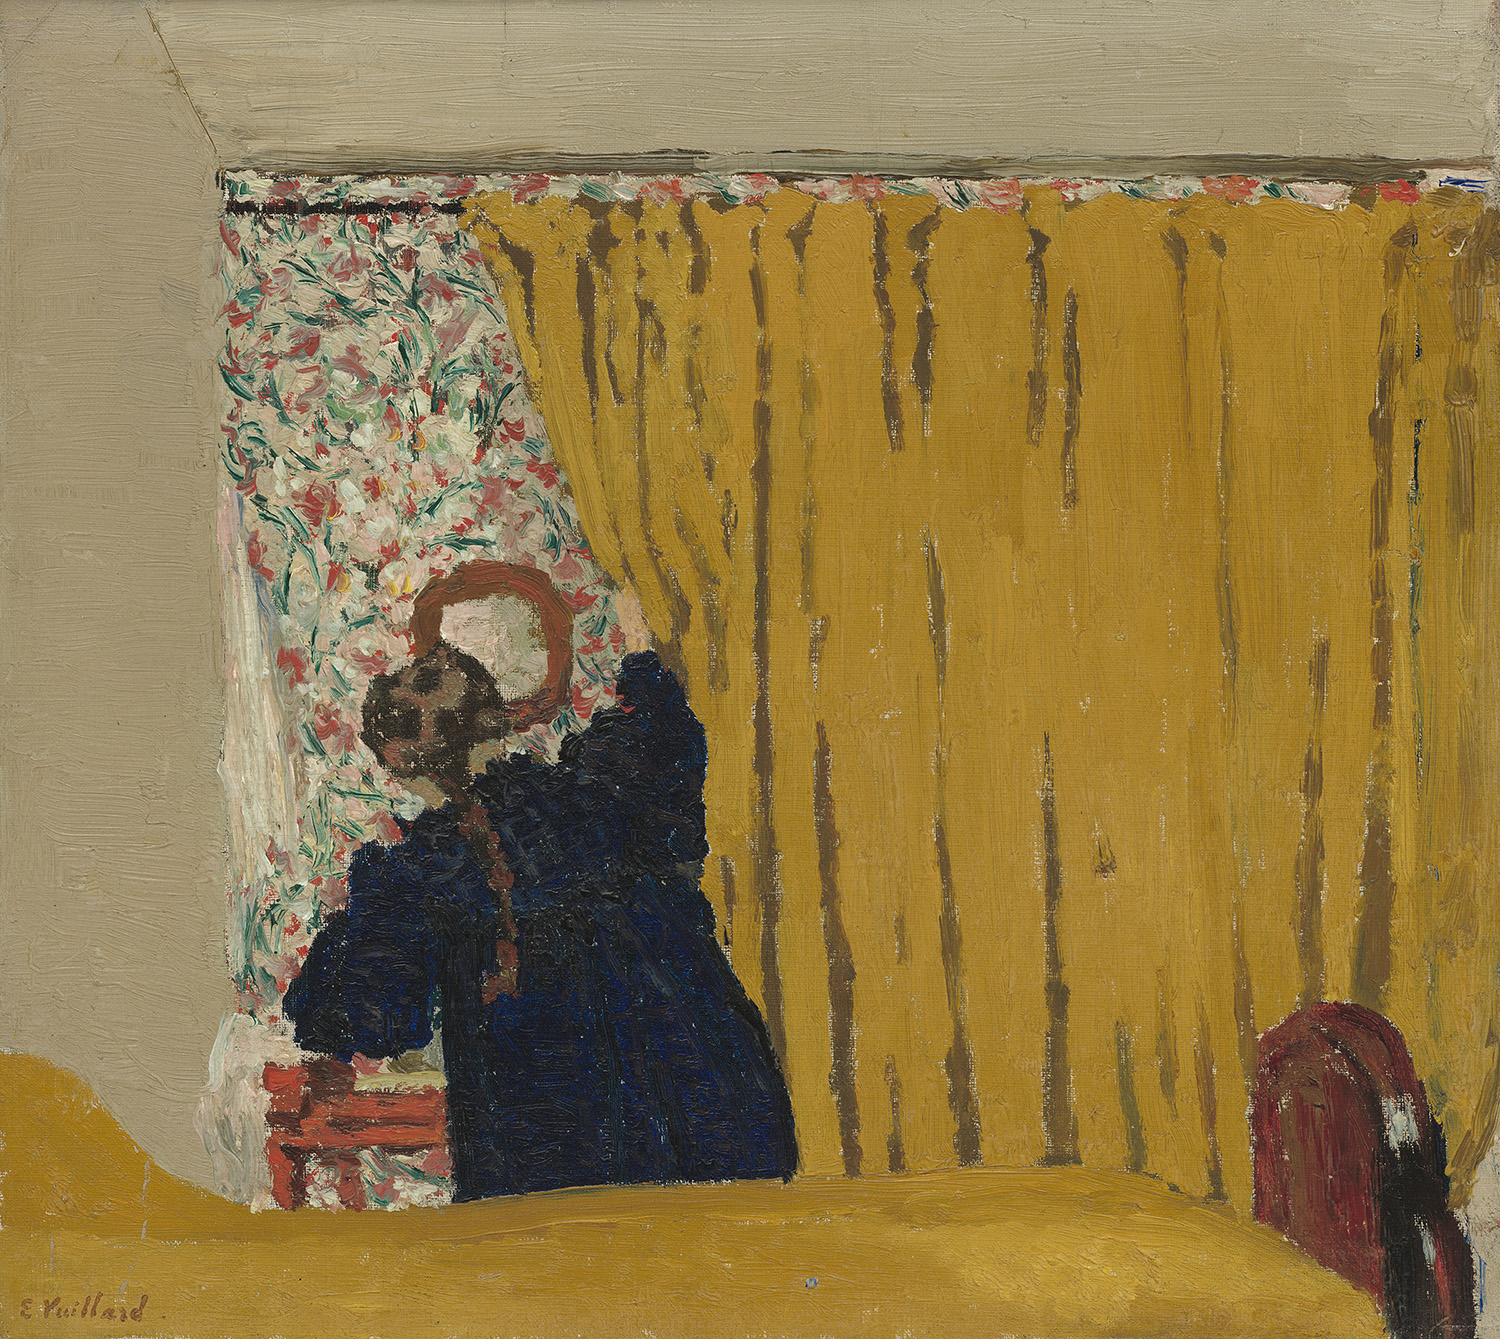 Distinguished Lecture: Édouard Vuillard: The Magician of the Mundane